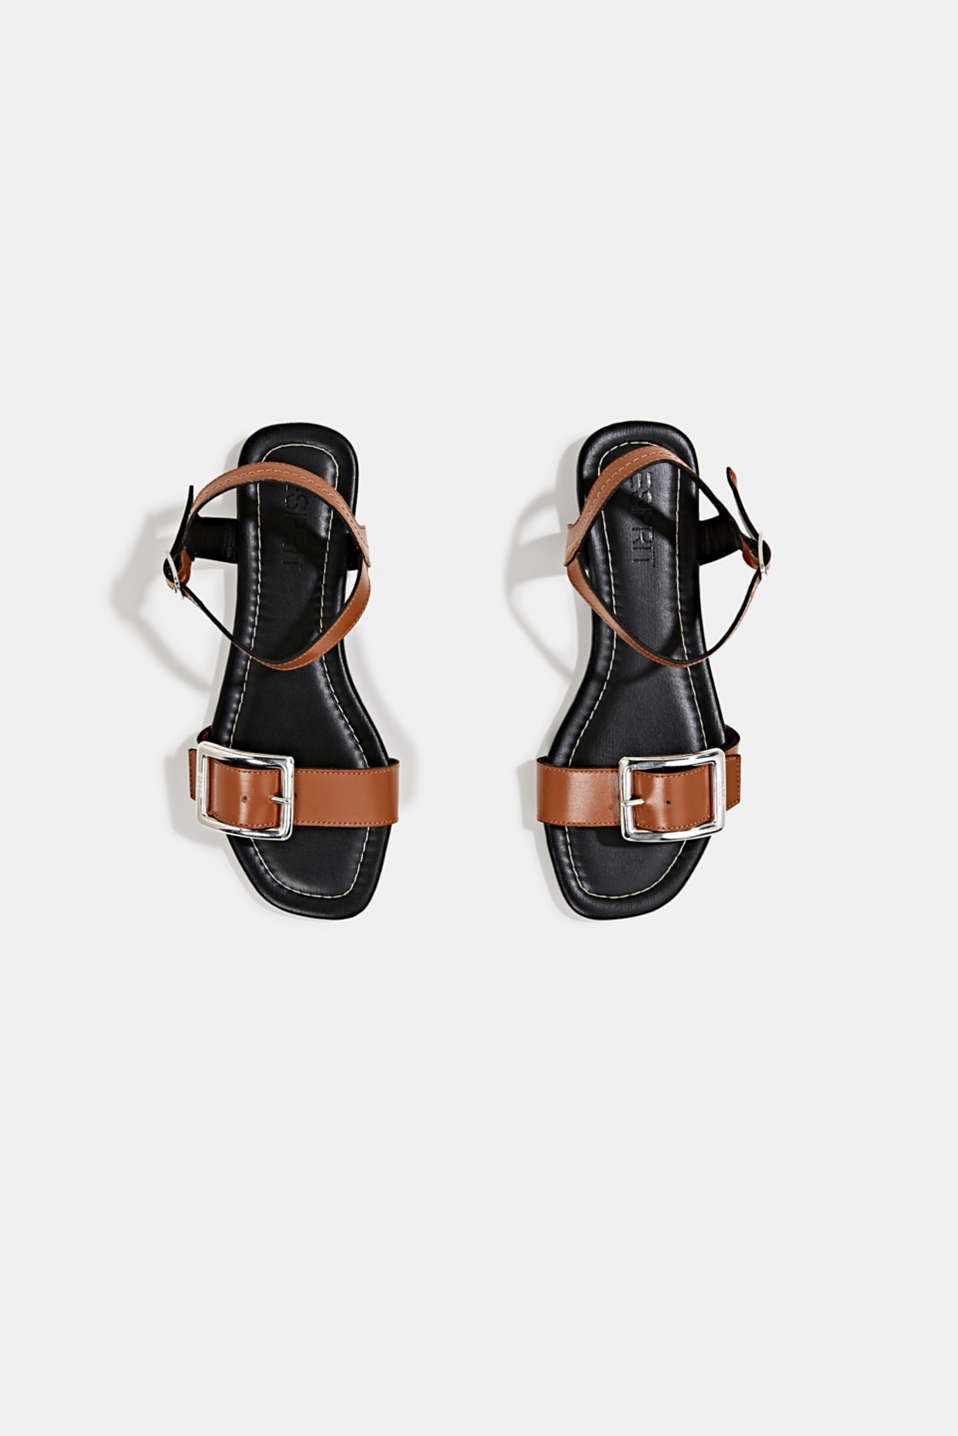 Leather sandals with buckles, CARAMEL, detail image number 1